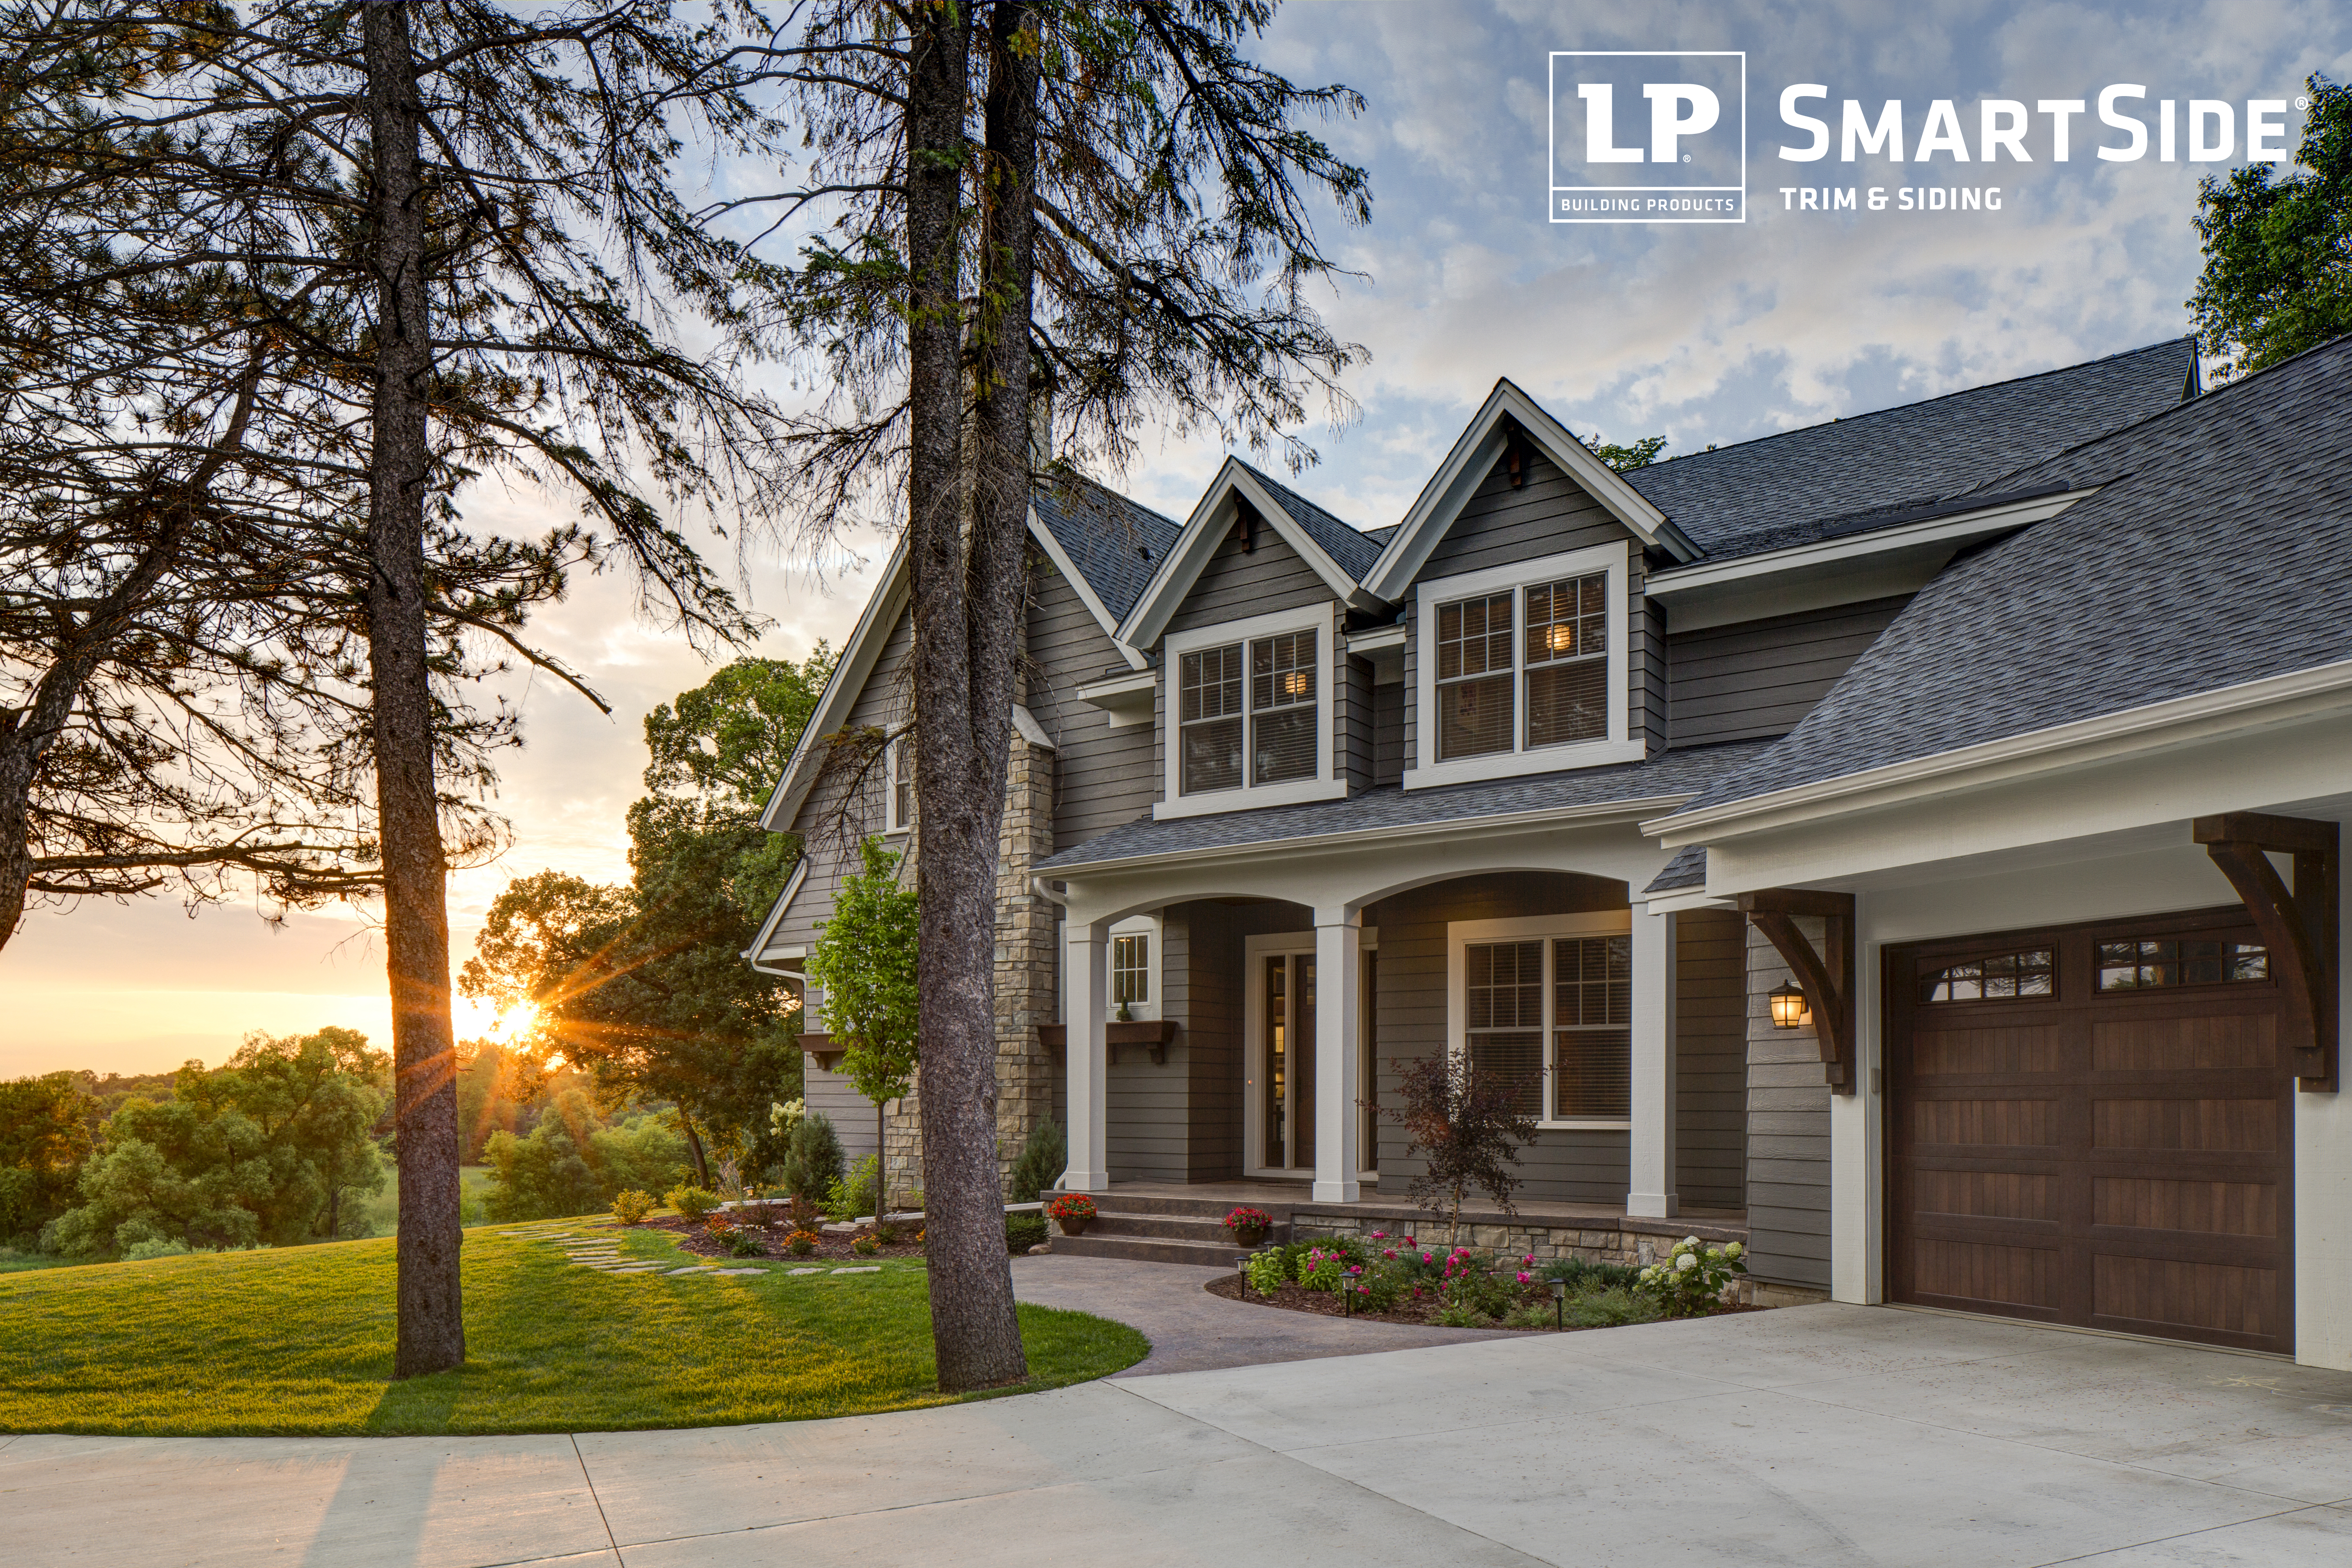 LP SmartSide siding